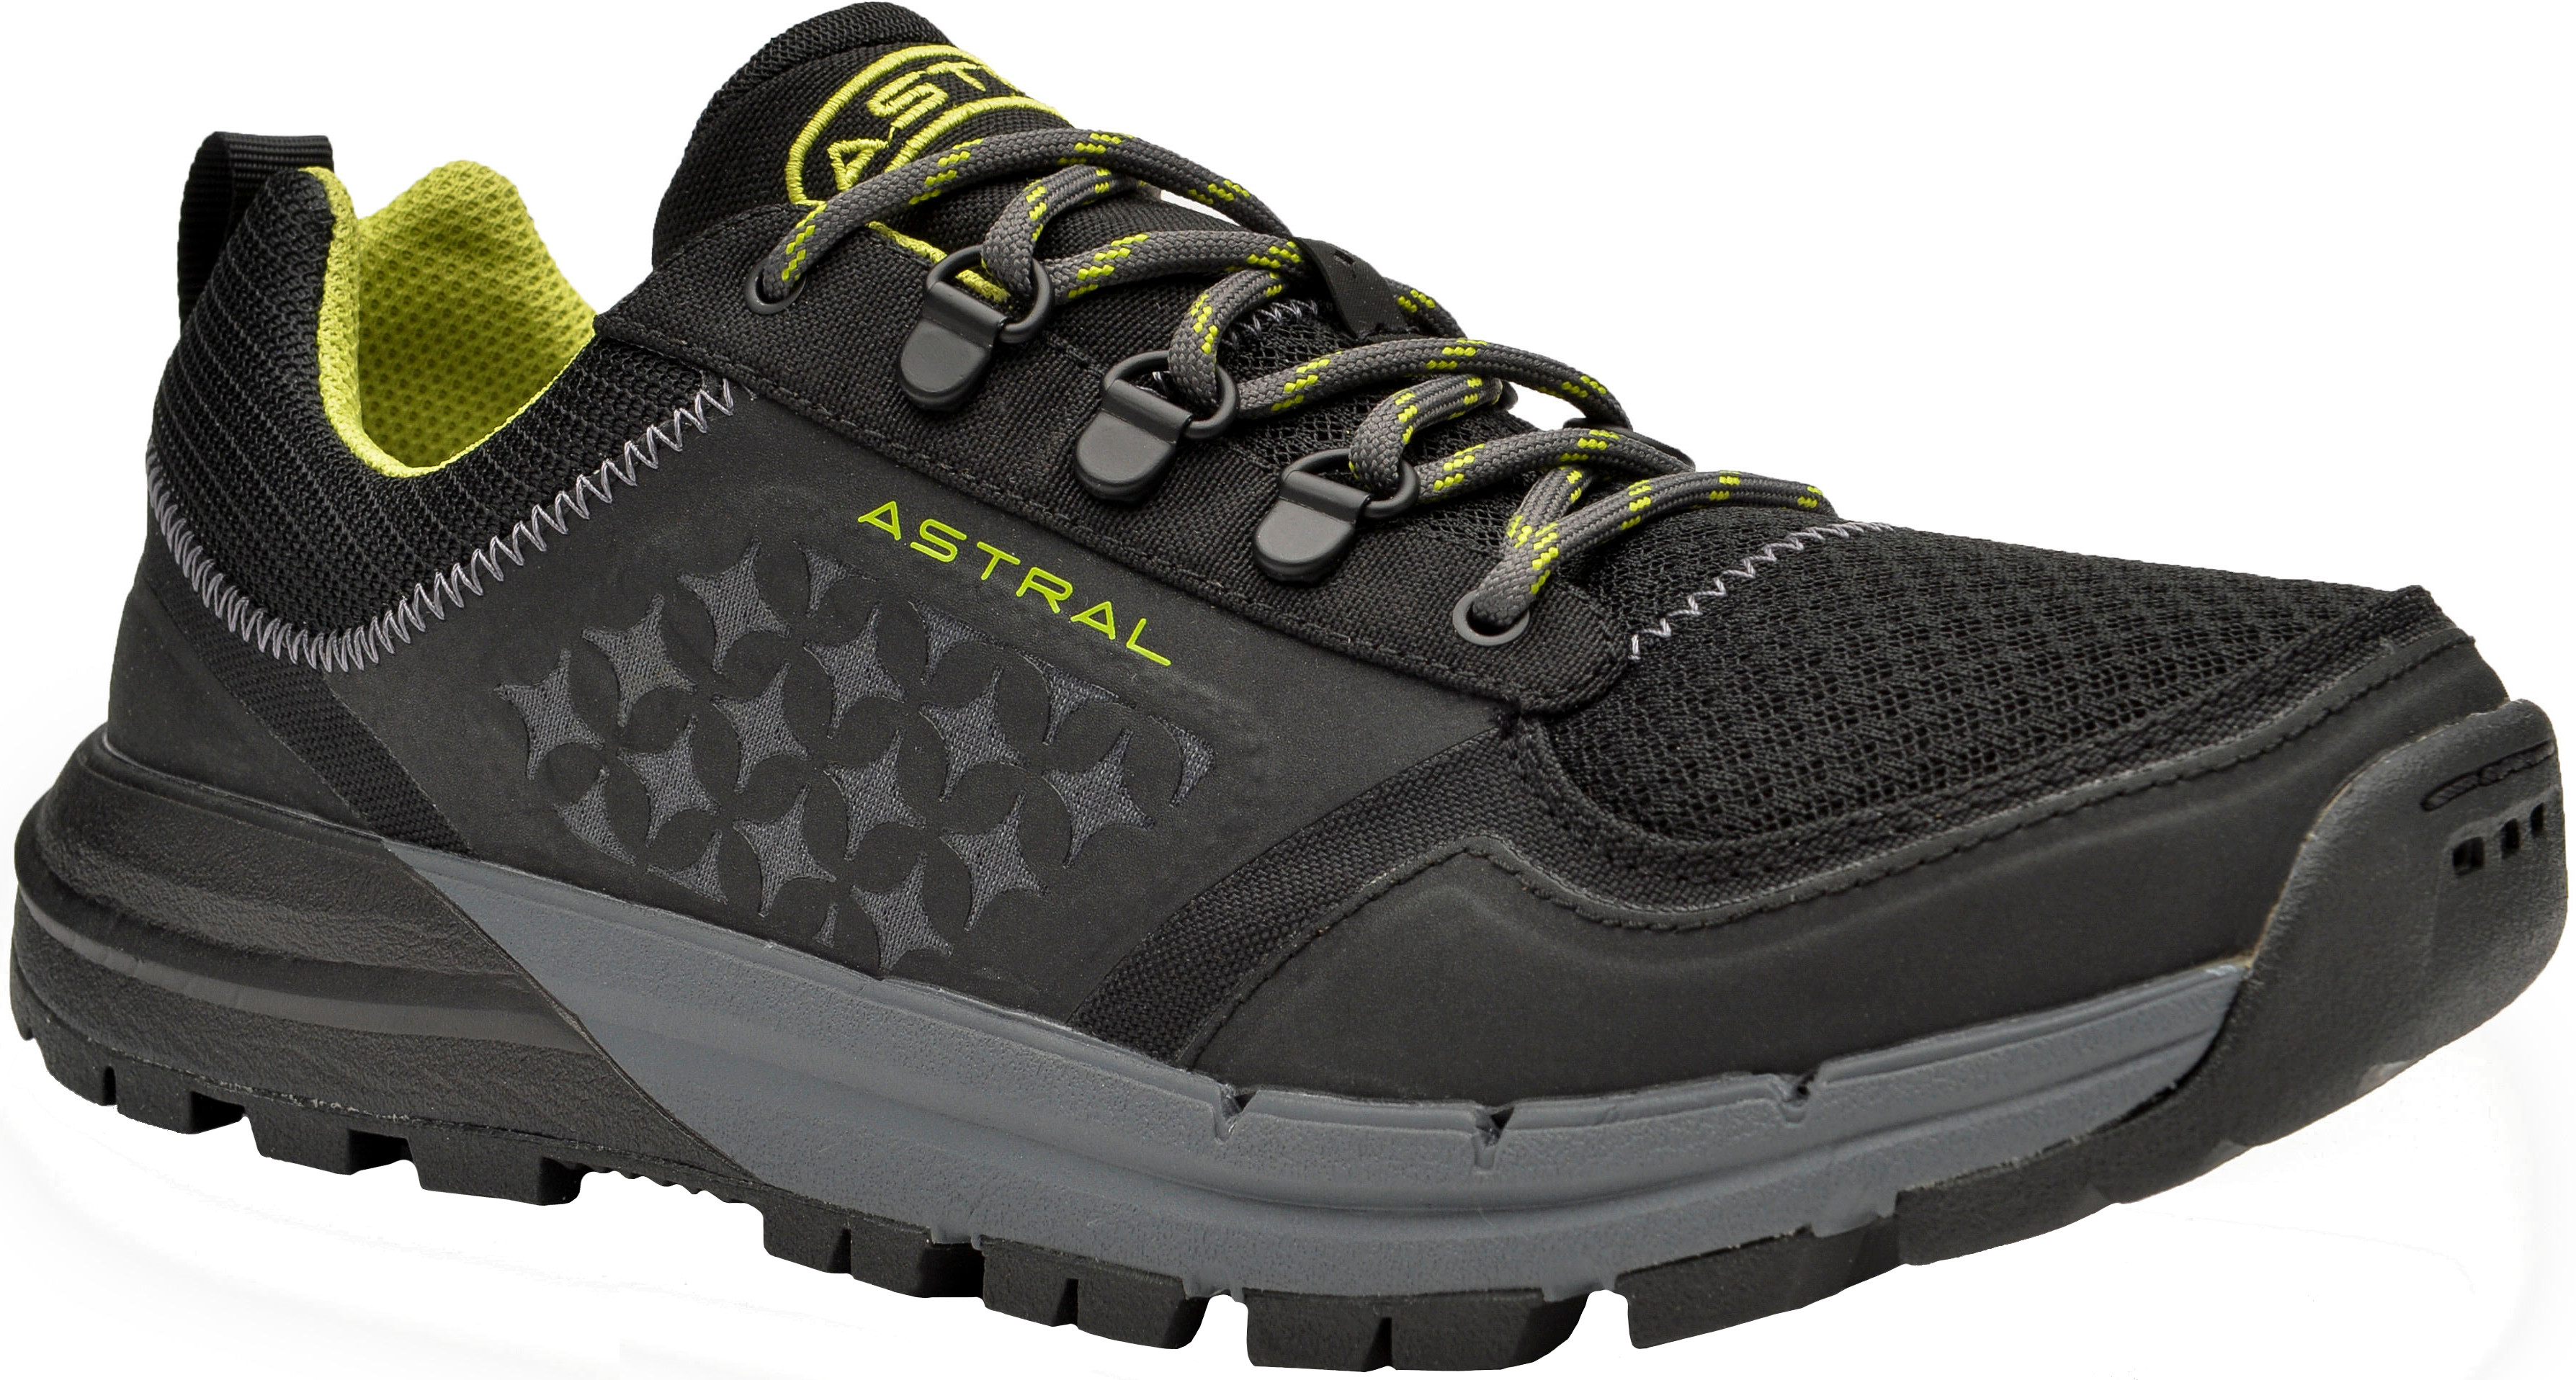 d1d466813721 Astral TR1 Trek Hiking Shoes - Men s with Free S H — CampSaver